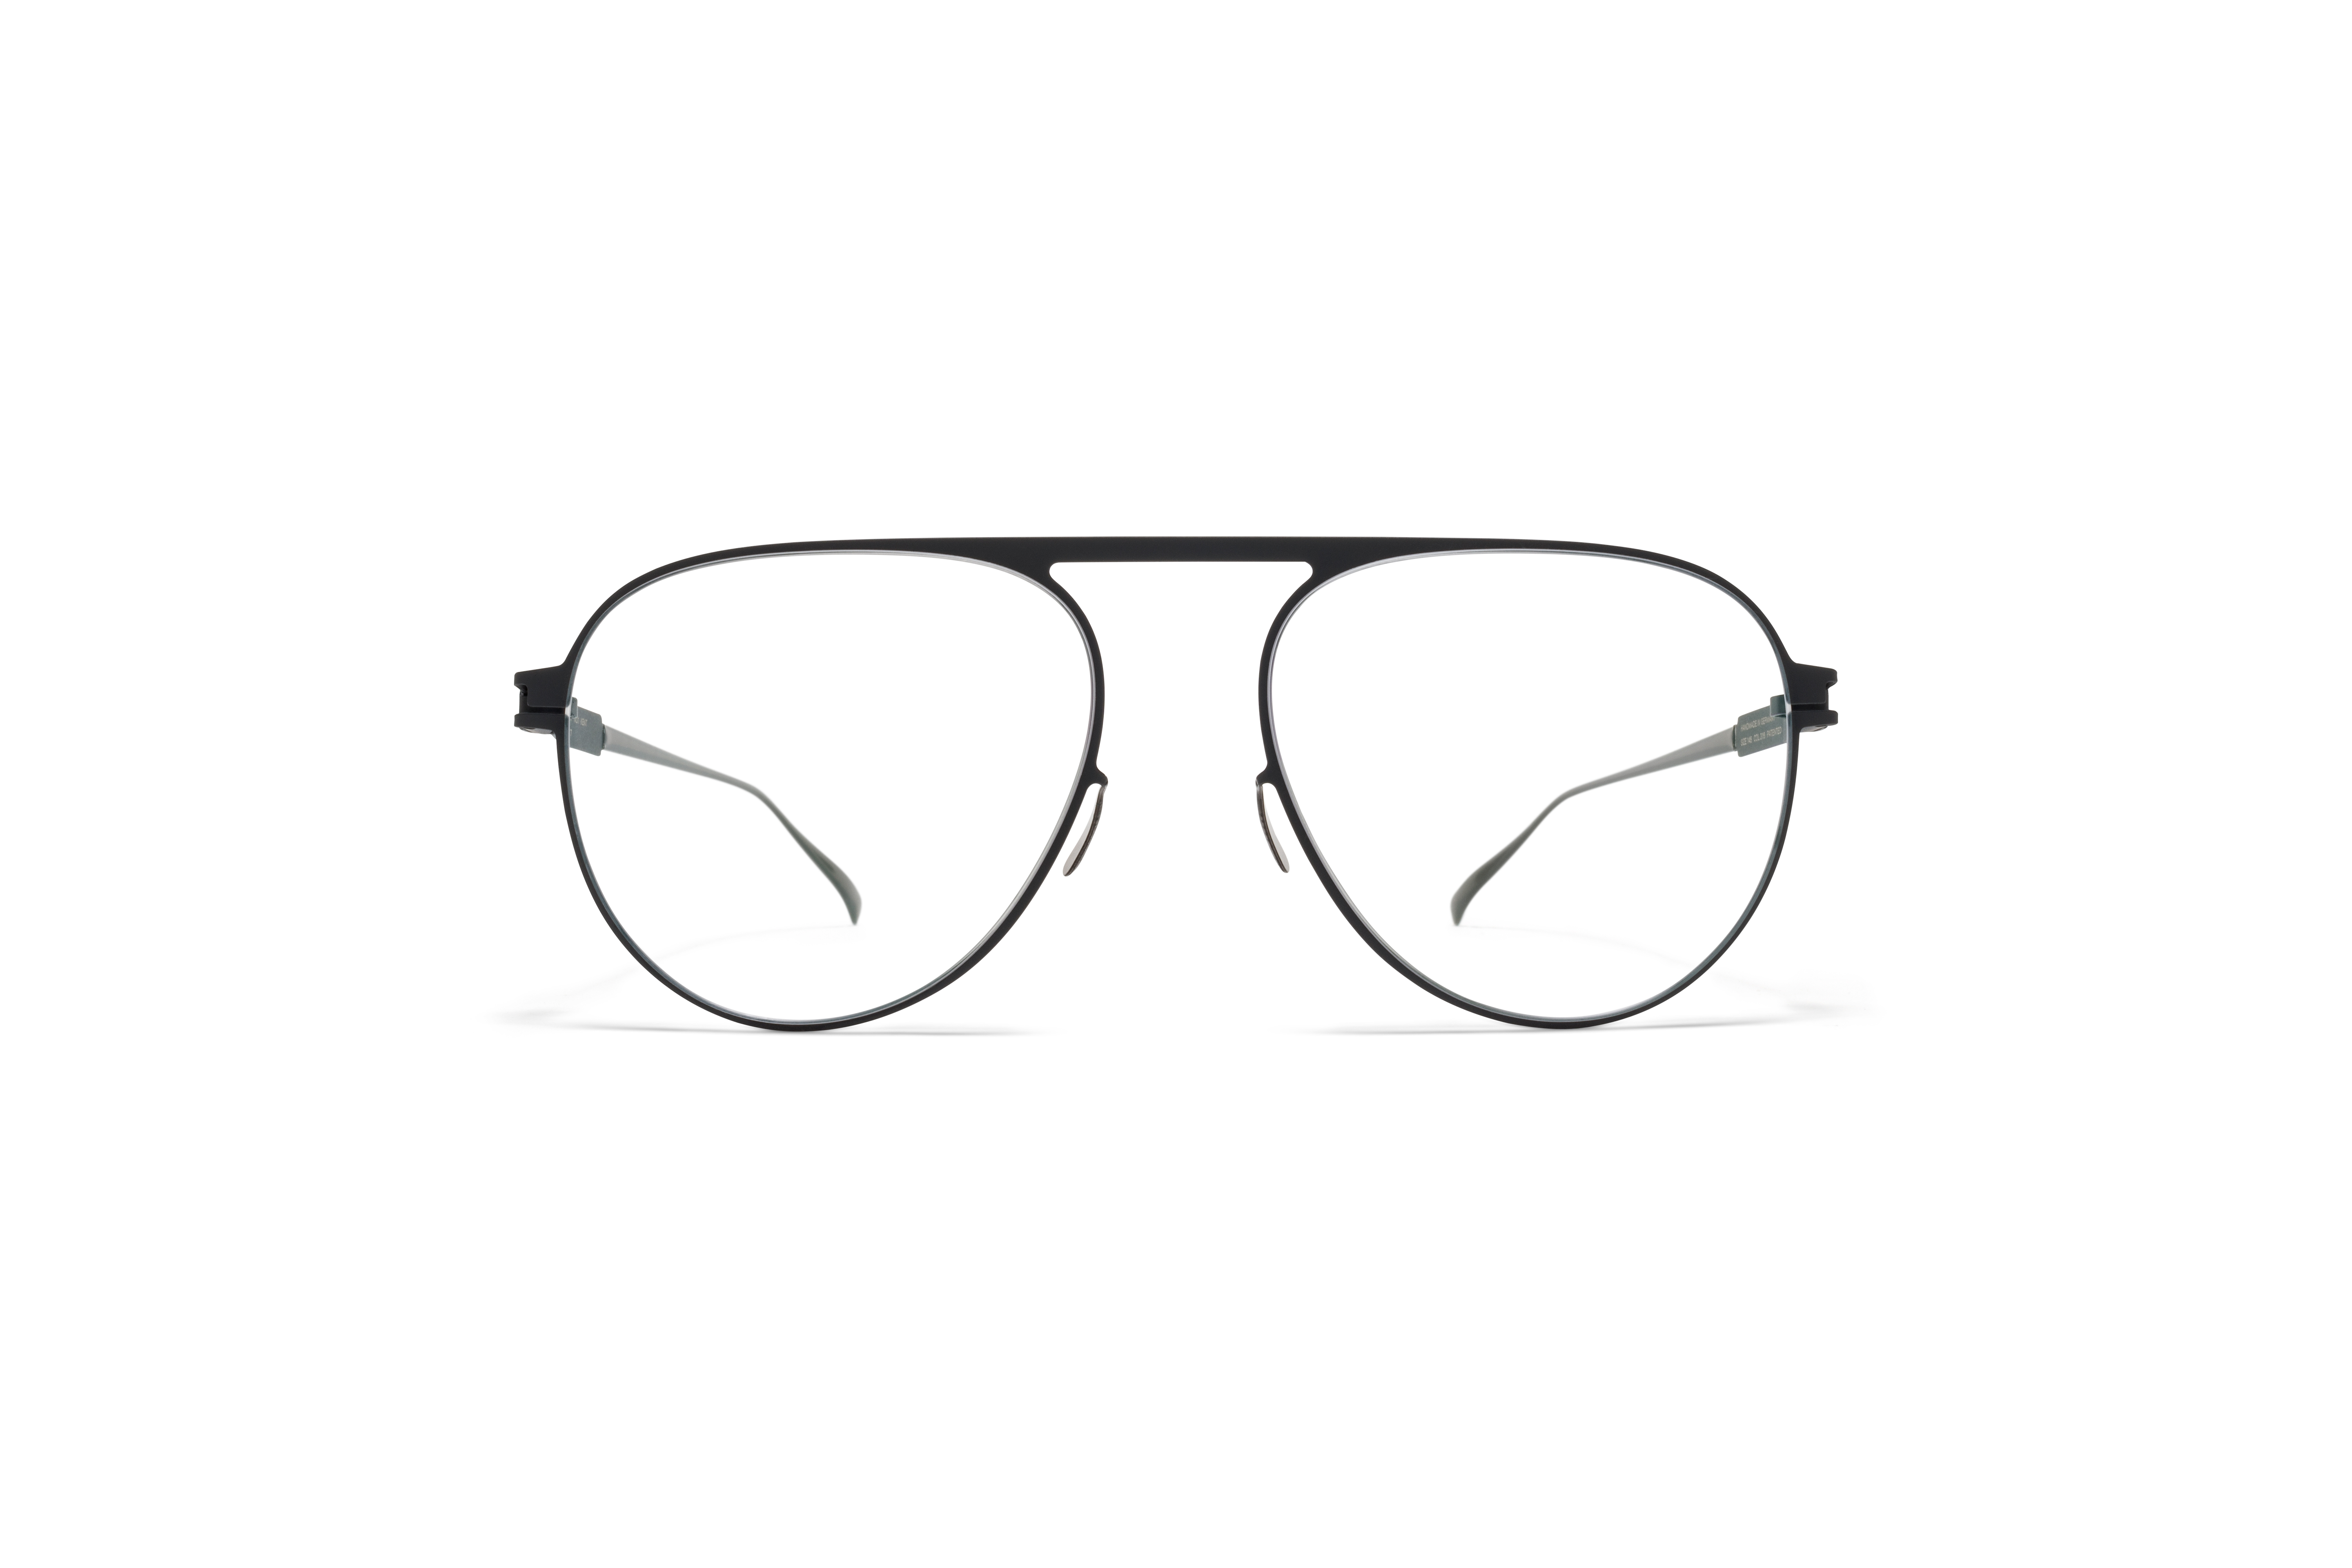 MYKITA No1 Rx Kent Shiny Graphite Nearly Black Cle59f9dccd0779d